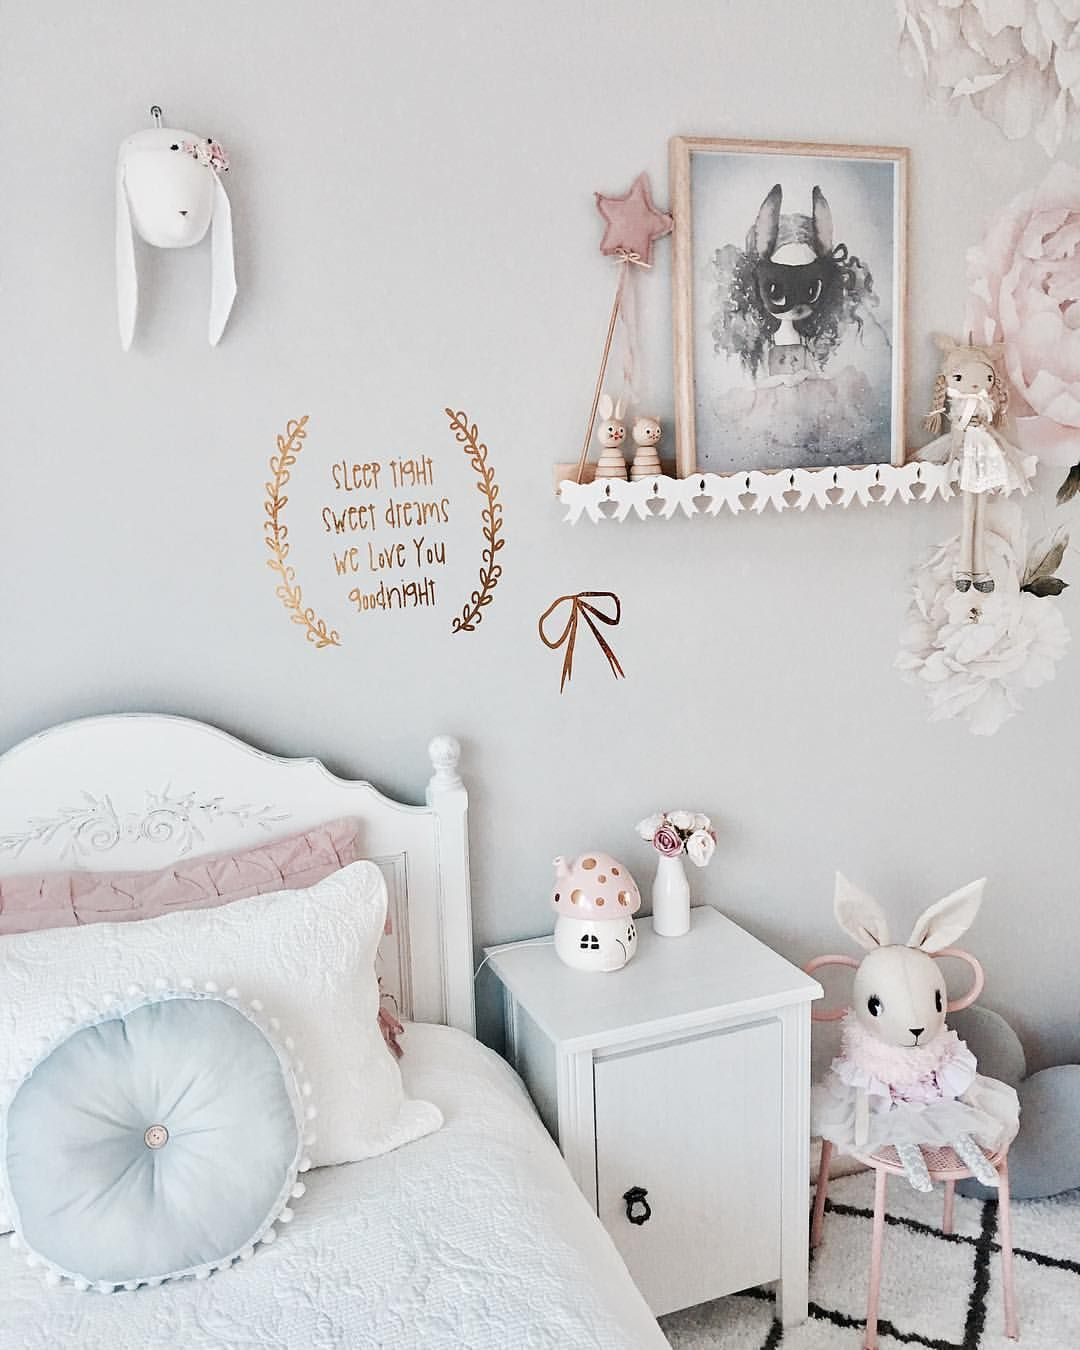 Inspiration from Instagram pastel girls room